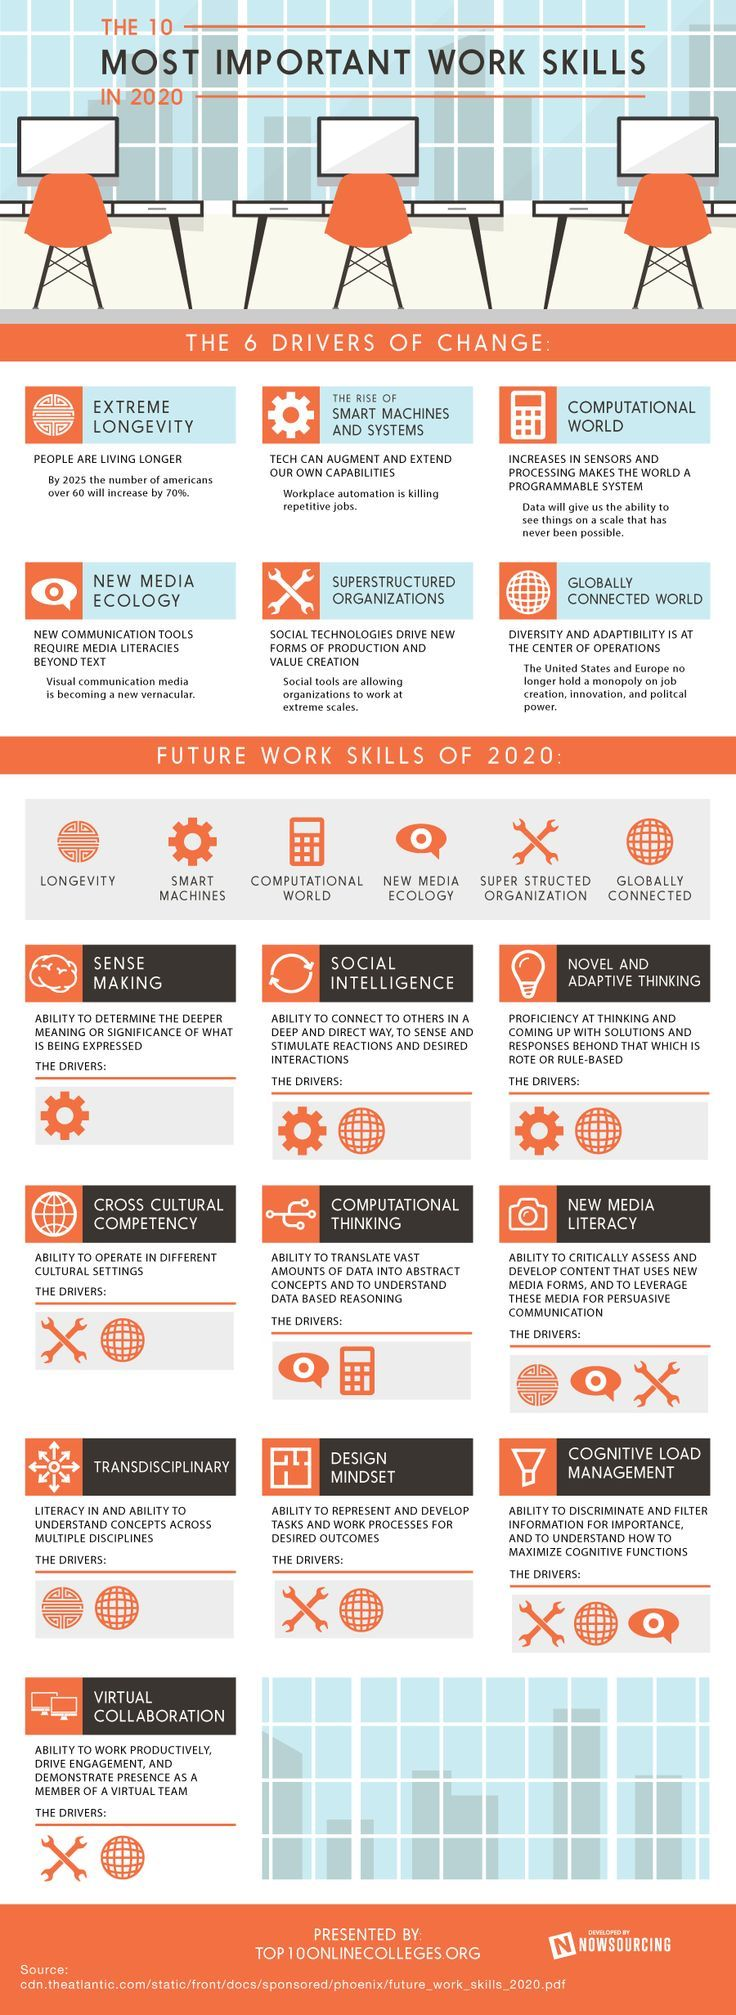 Top Skills For Resume 10 Important Skills You'll Need To Succeed At Work In 2020 .